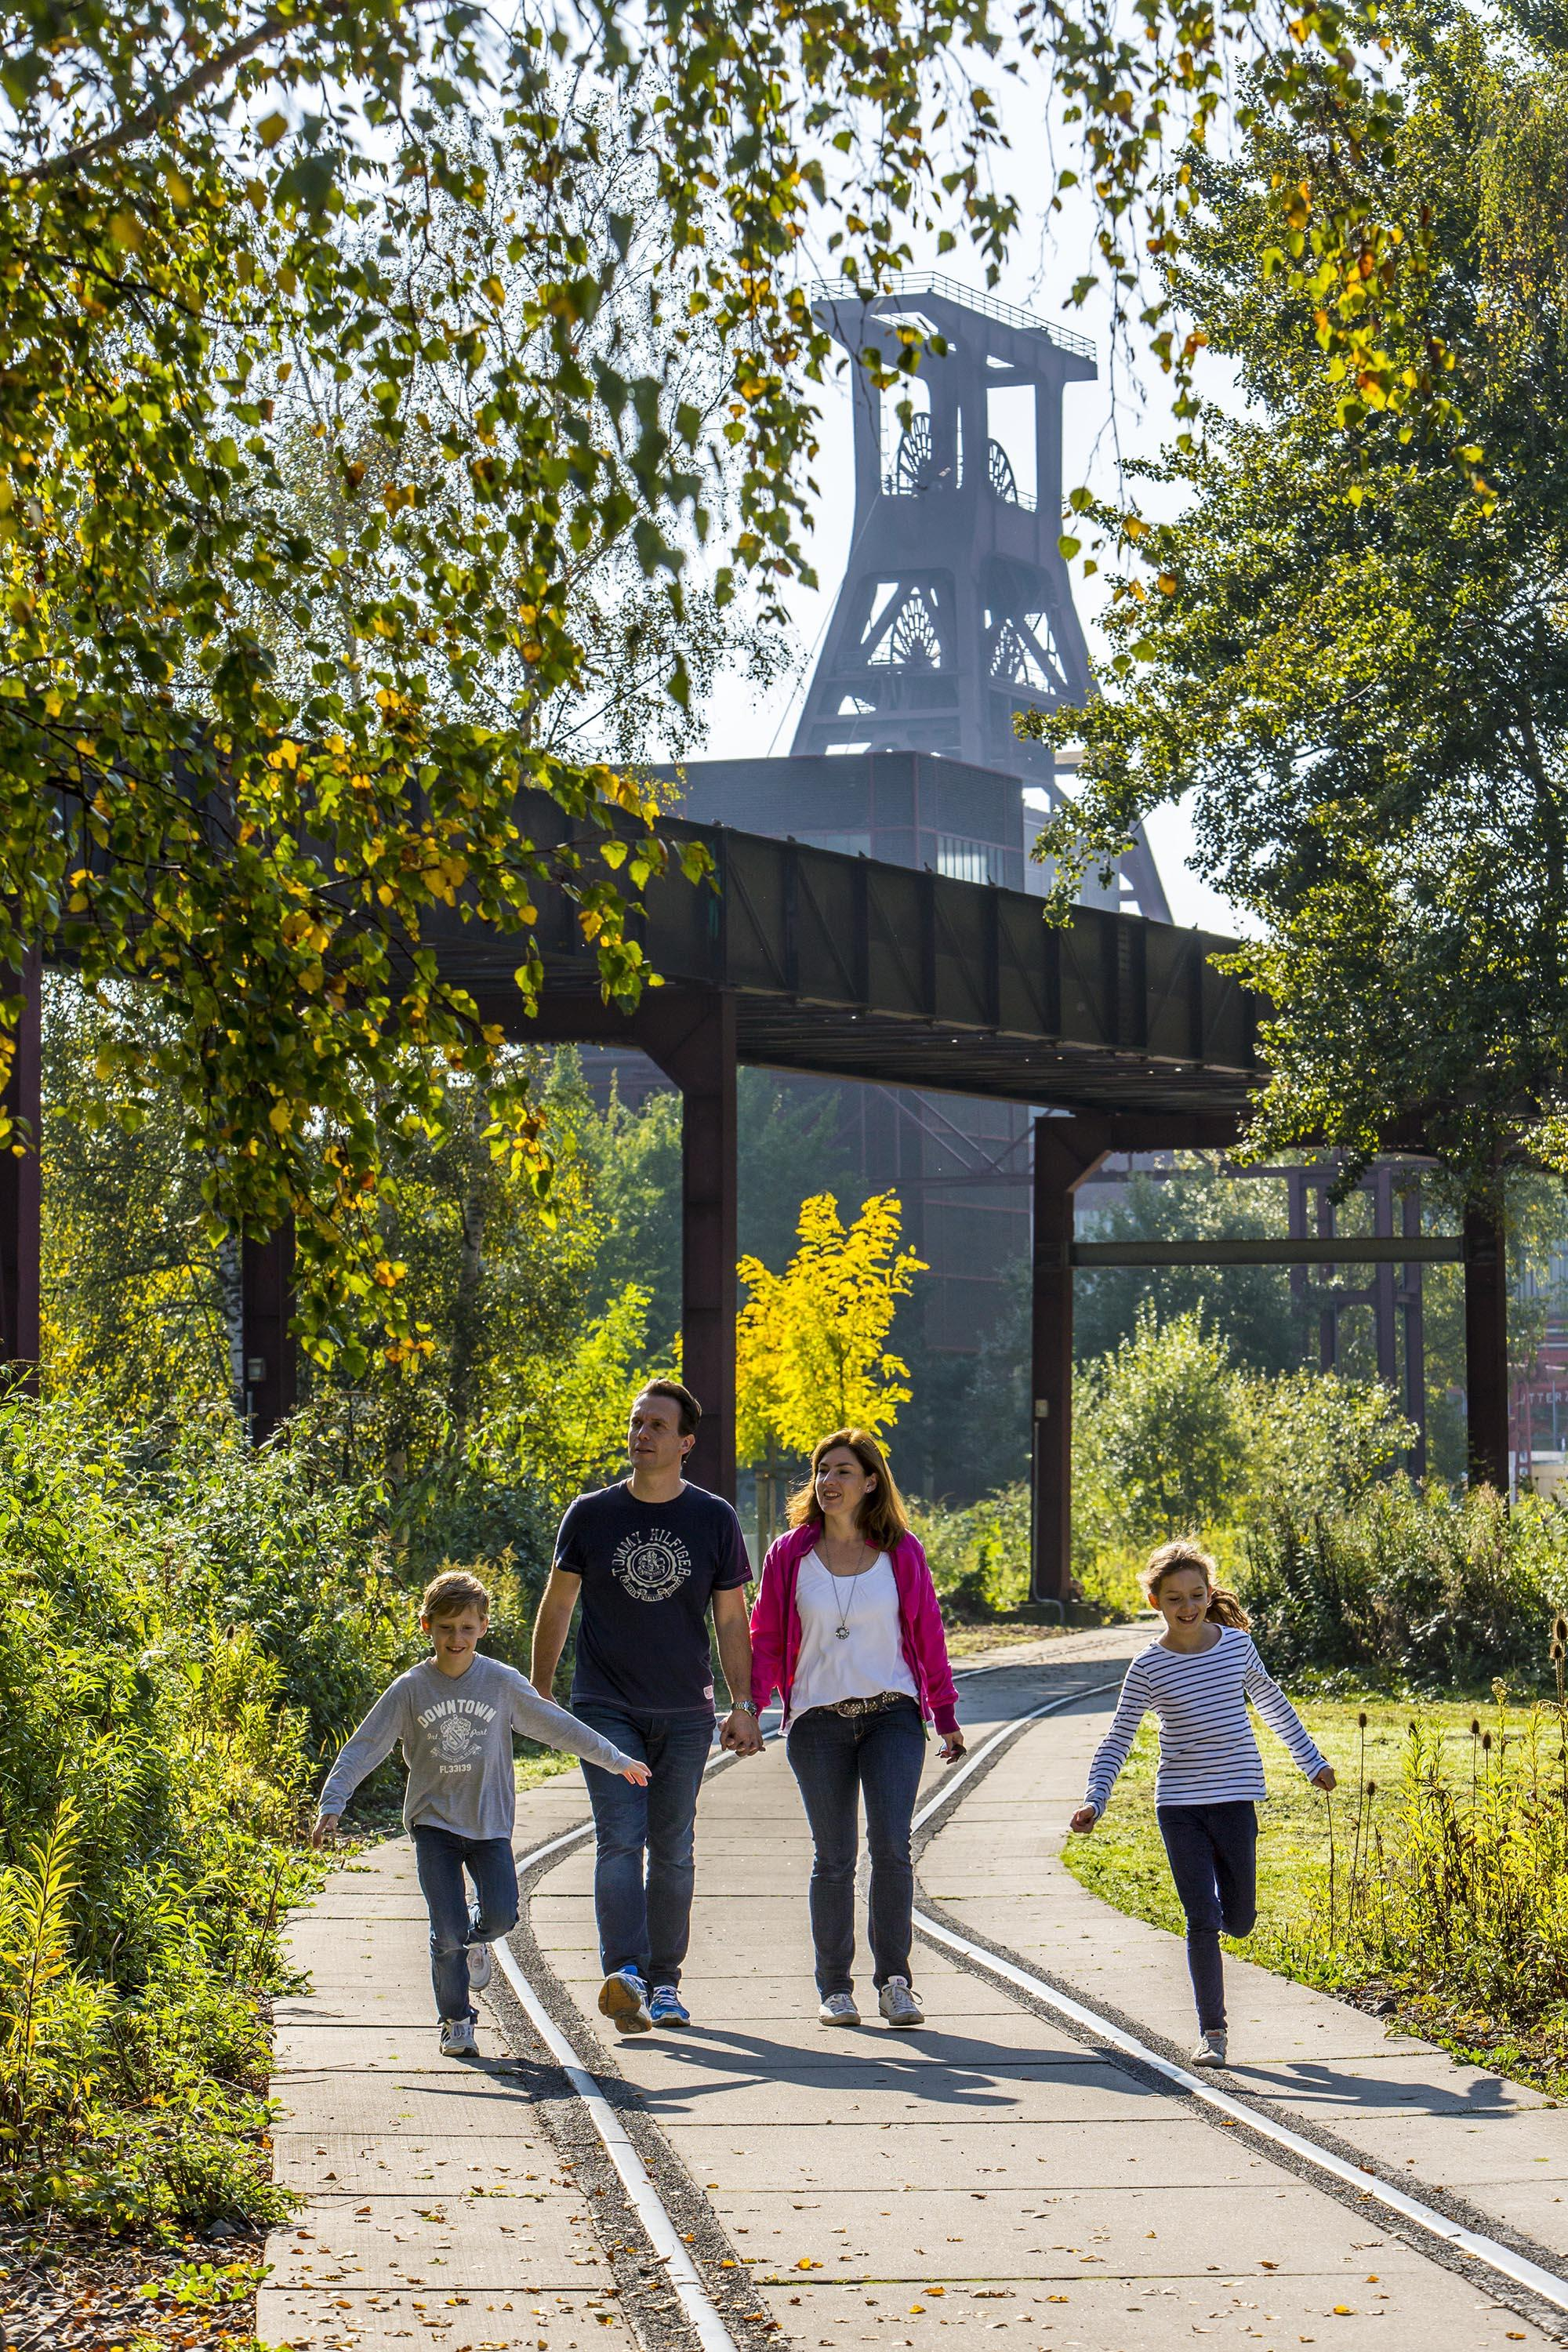 There is a lot to discover for children living in the city: a nature trail with 12 stations clearly shows the special features of the ecosystem on the World Heritage Site. - © Jochen Tack / Zollverein Foundation